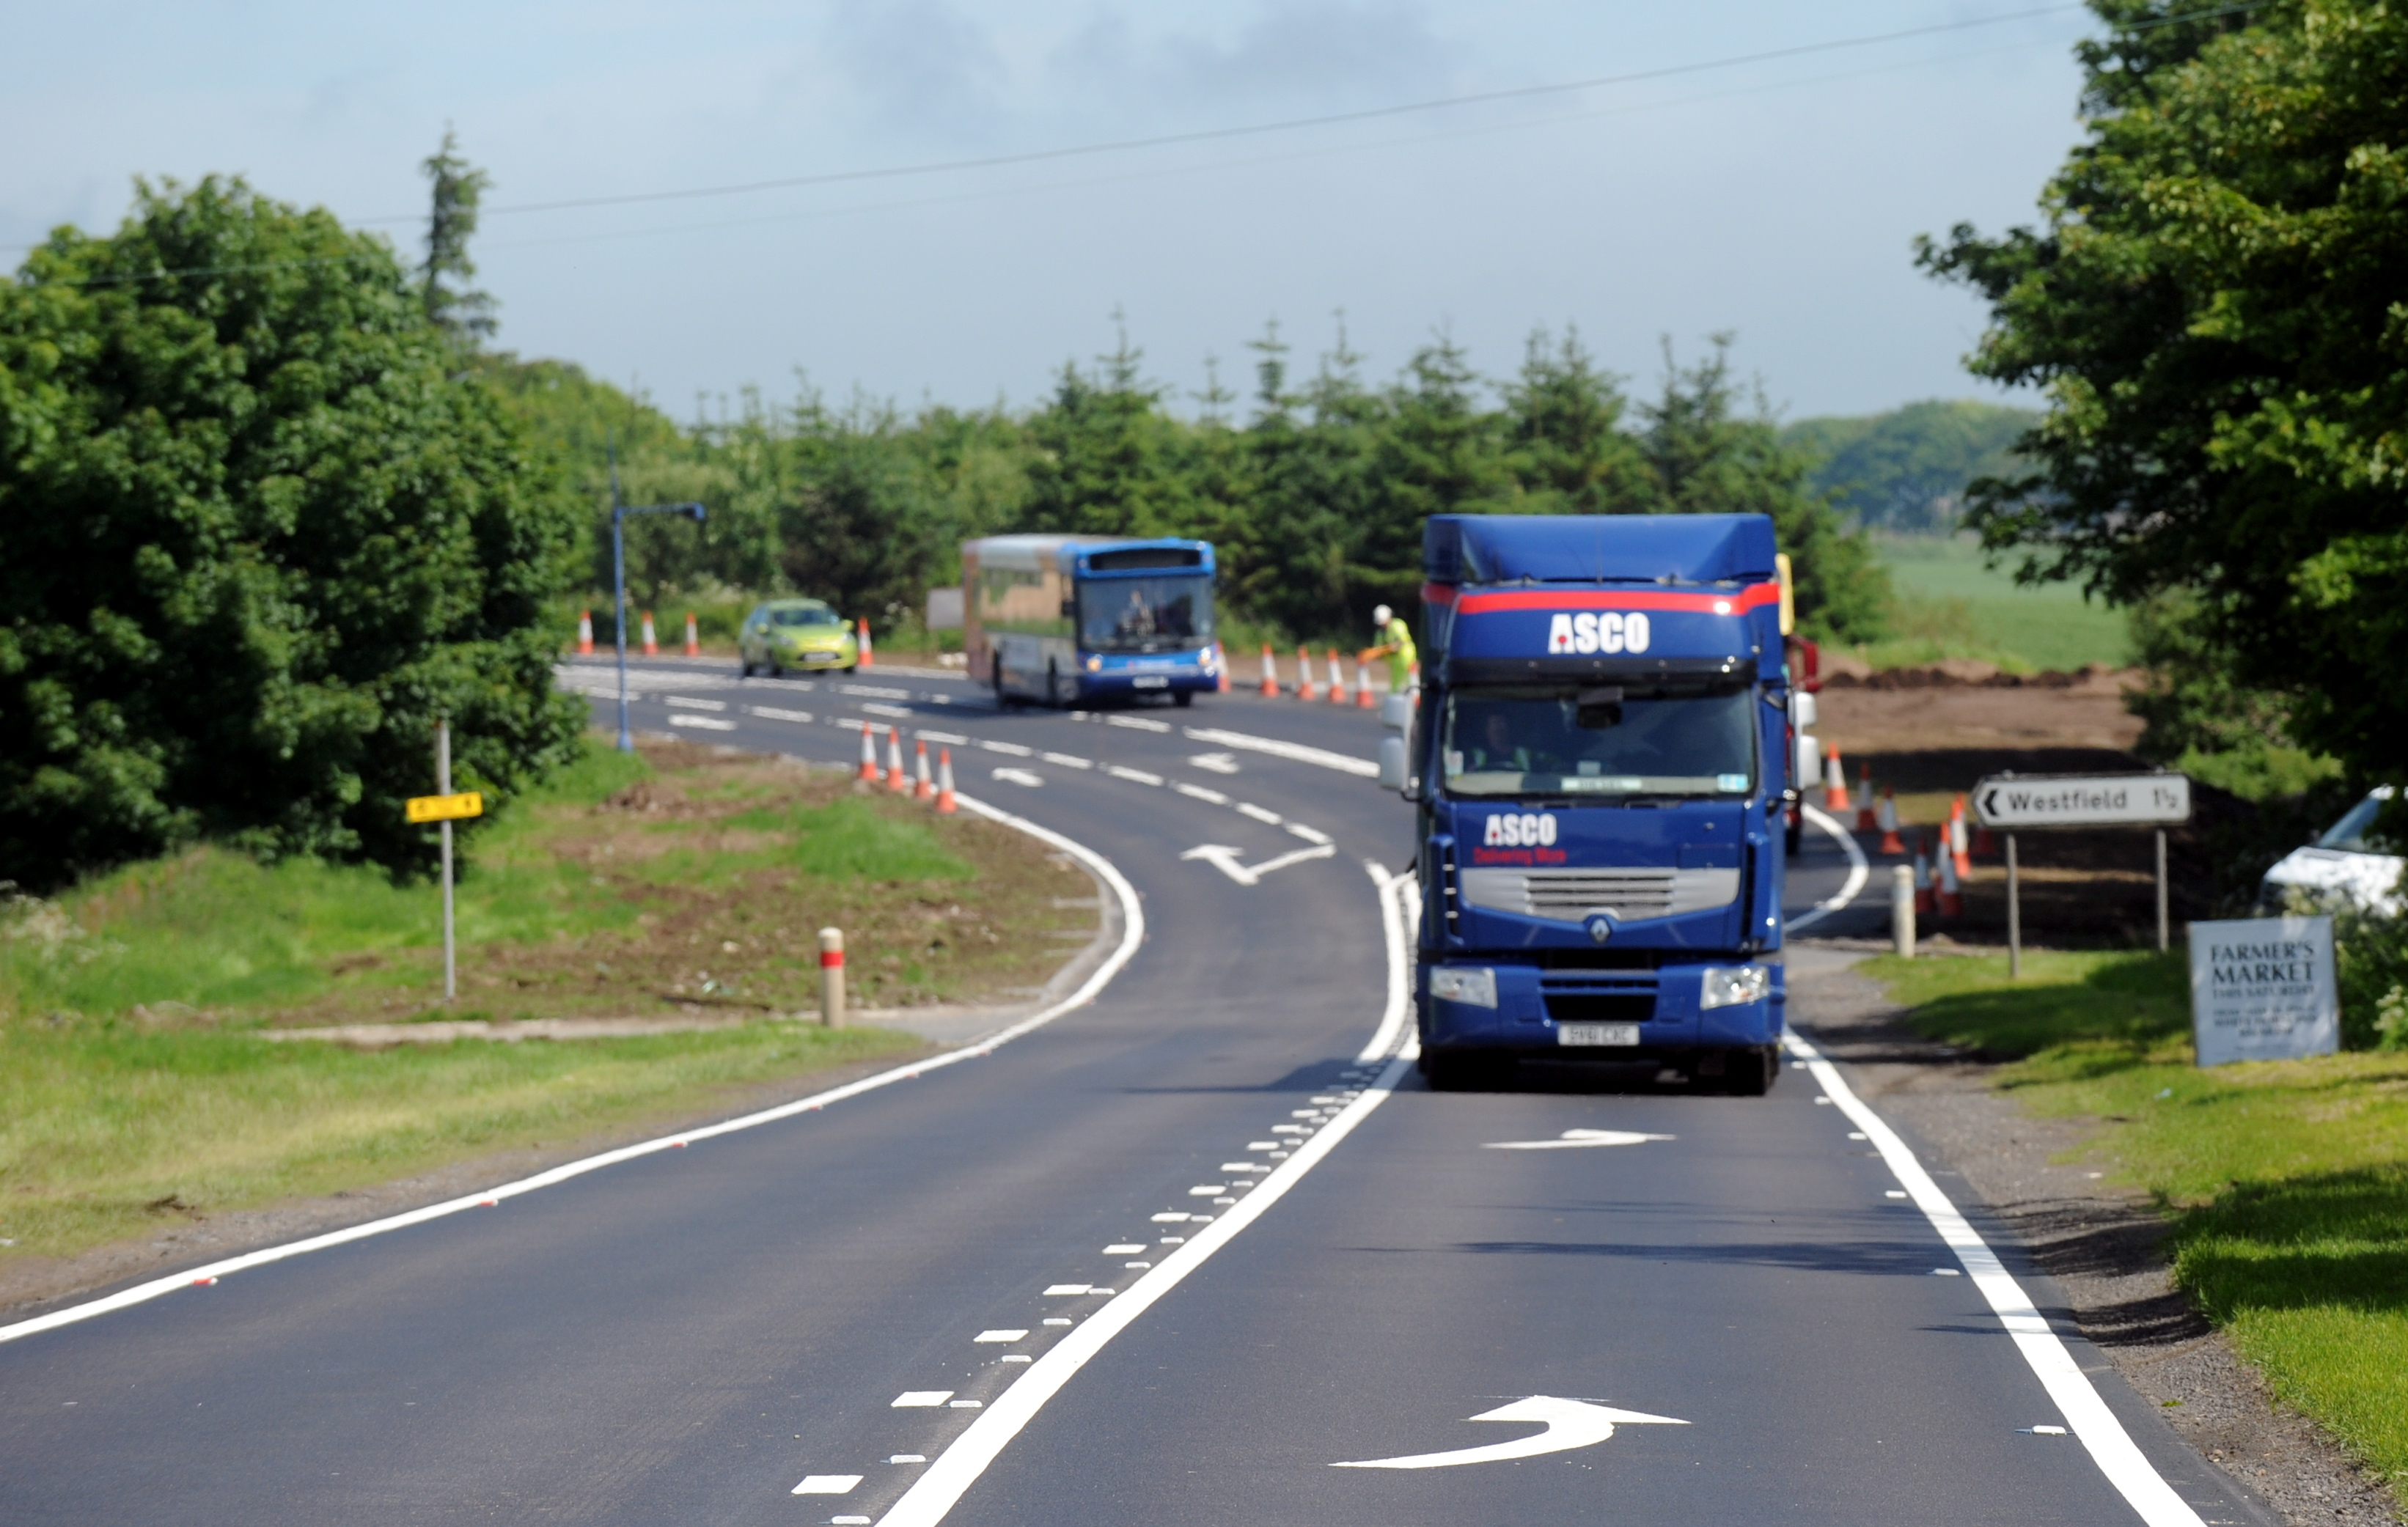 speed:  HGVs  over 7.5 tonnes can currently travel at 40mph on single carriageways.